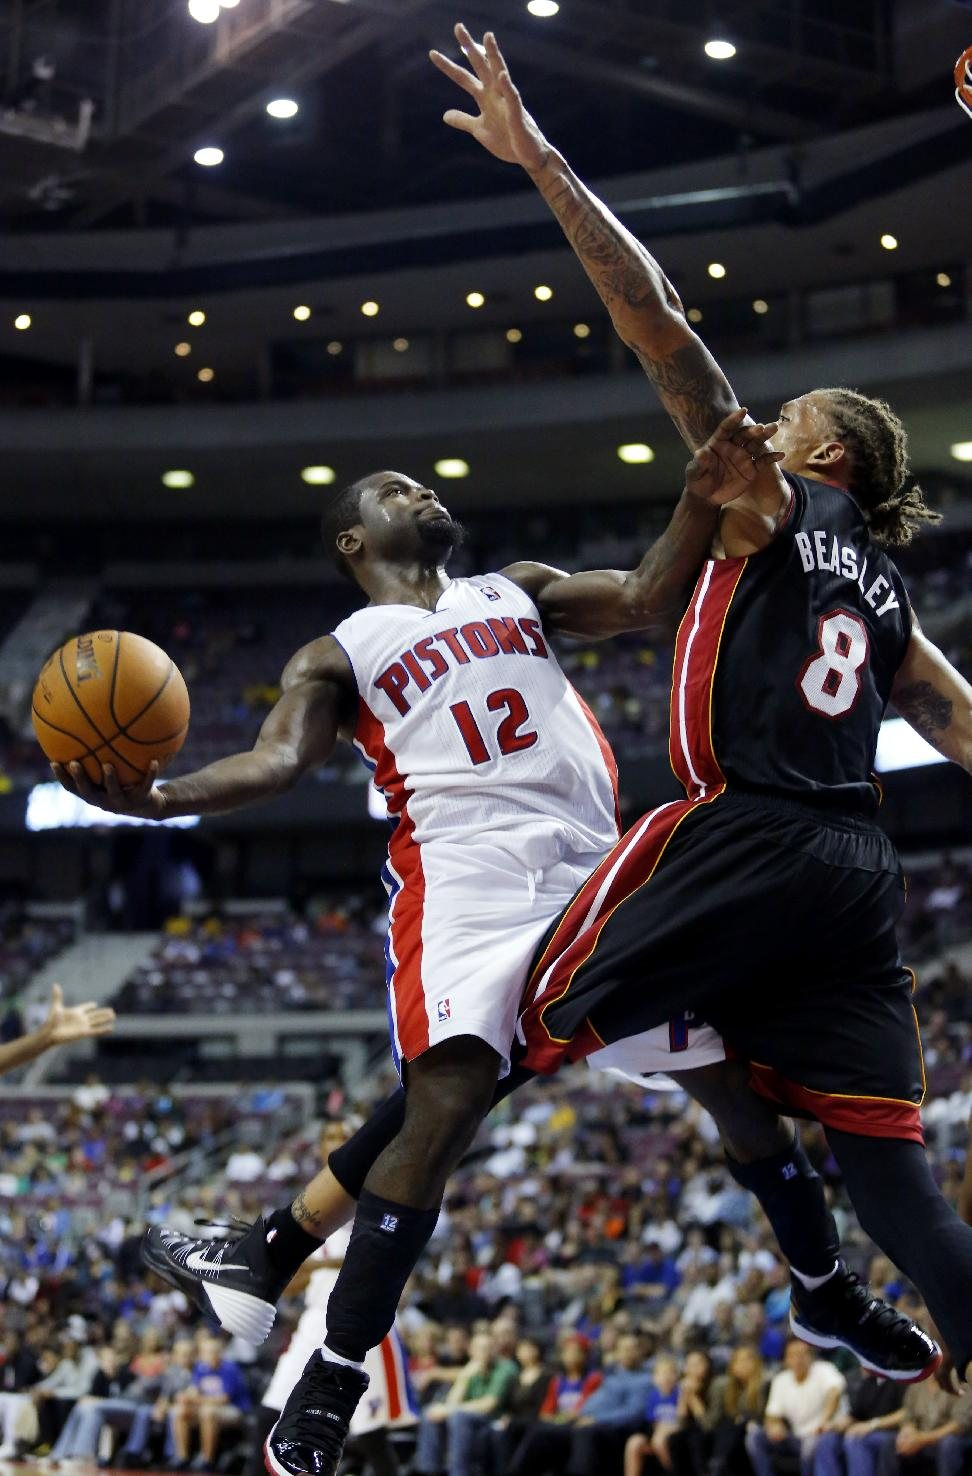 Detroit Pistons guard Will Bynum (12) goes to the basket against Miami Heat forward Michael Beasley (8) in the second half of a preseason NBA basketball...